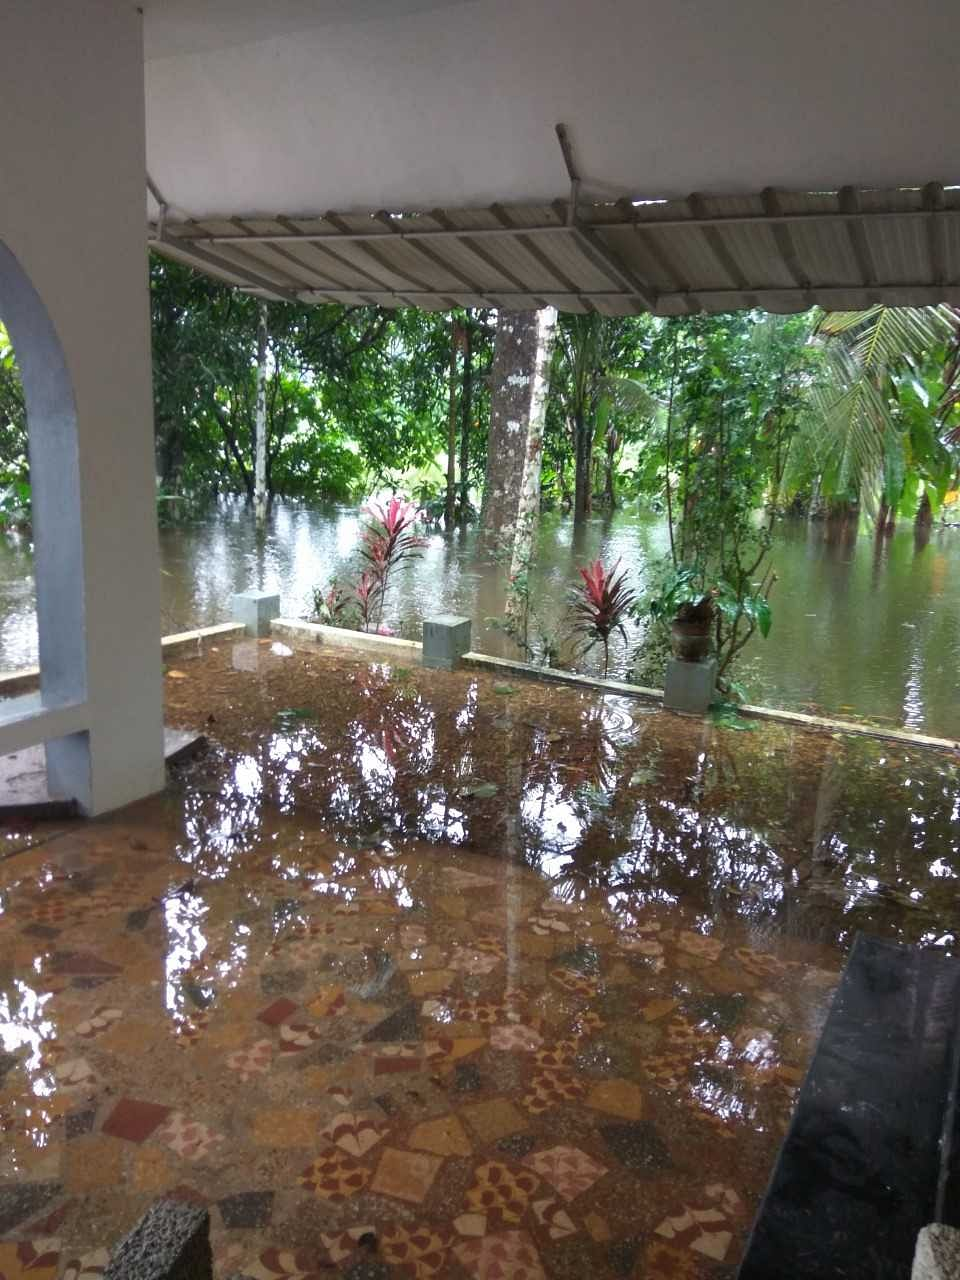 I woke up in the morning to see the porch turned into a private swimming pool.